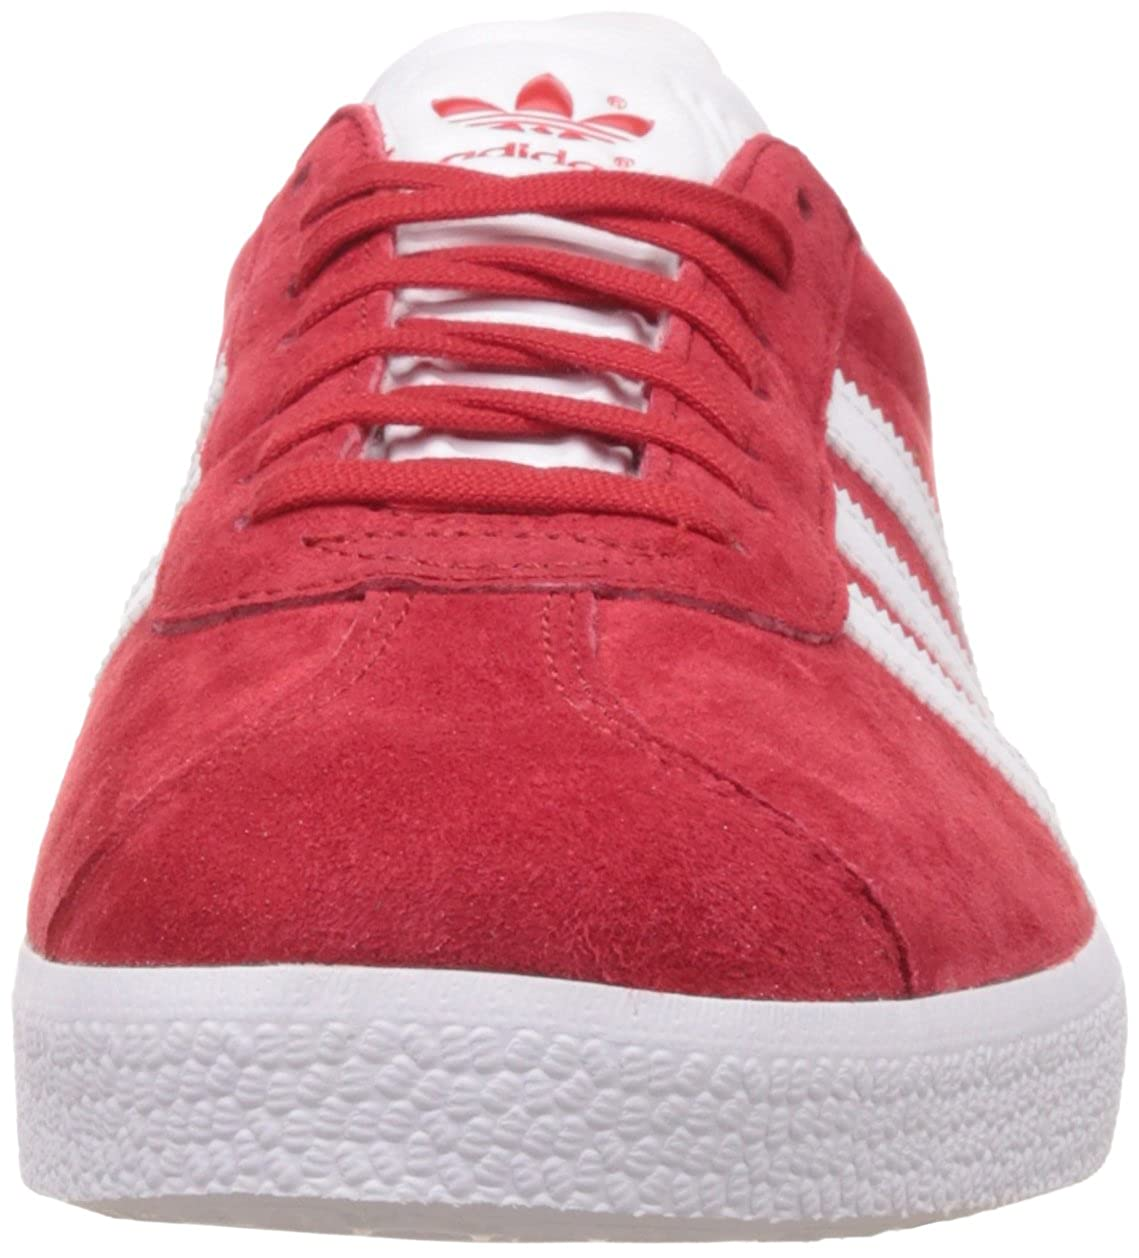 check out 0ce09 22707 adidas Originals Gazelle, Scarpe da Ginnastica Basse Uomo  MainApps   Amazon.it  Scarpe e borse